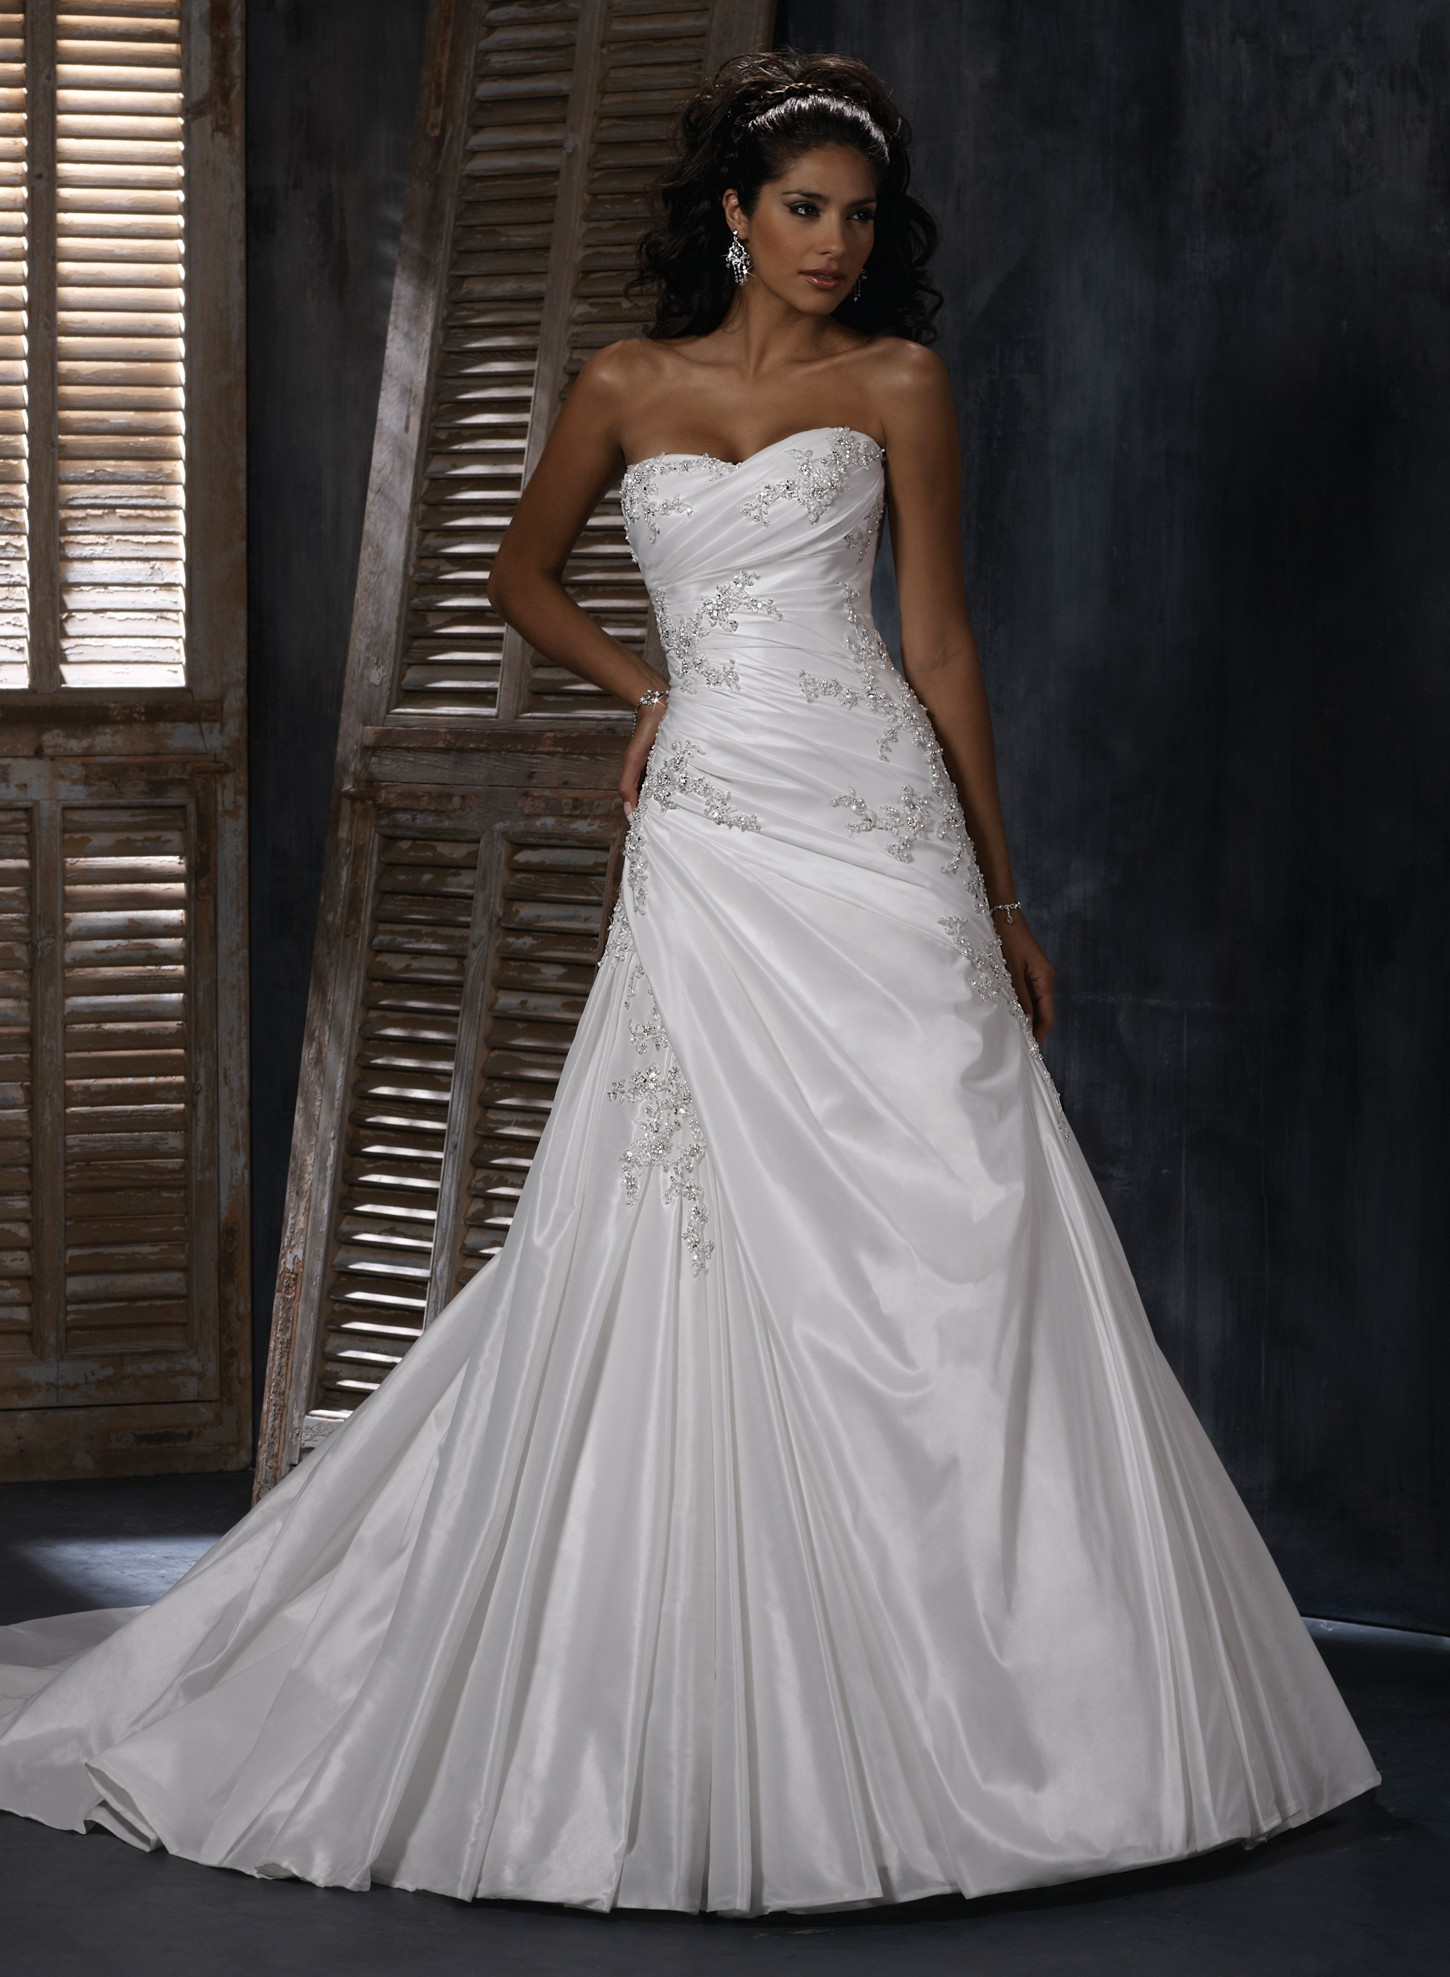 bordeaux-taffeta-soft-sweetheart-neckline-a-line-wedding-dress